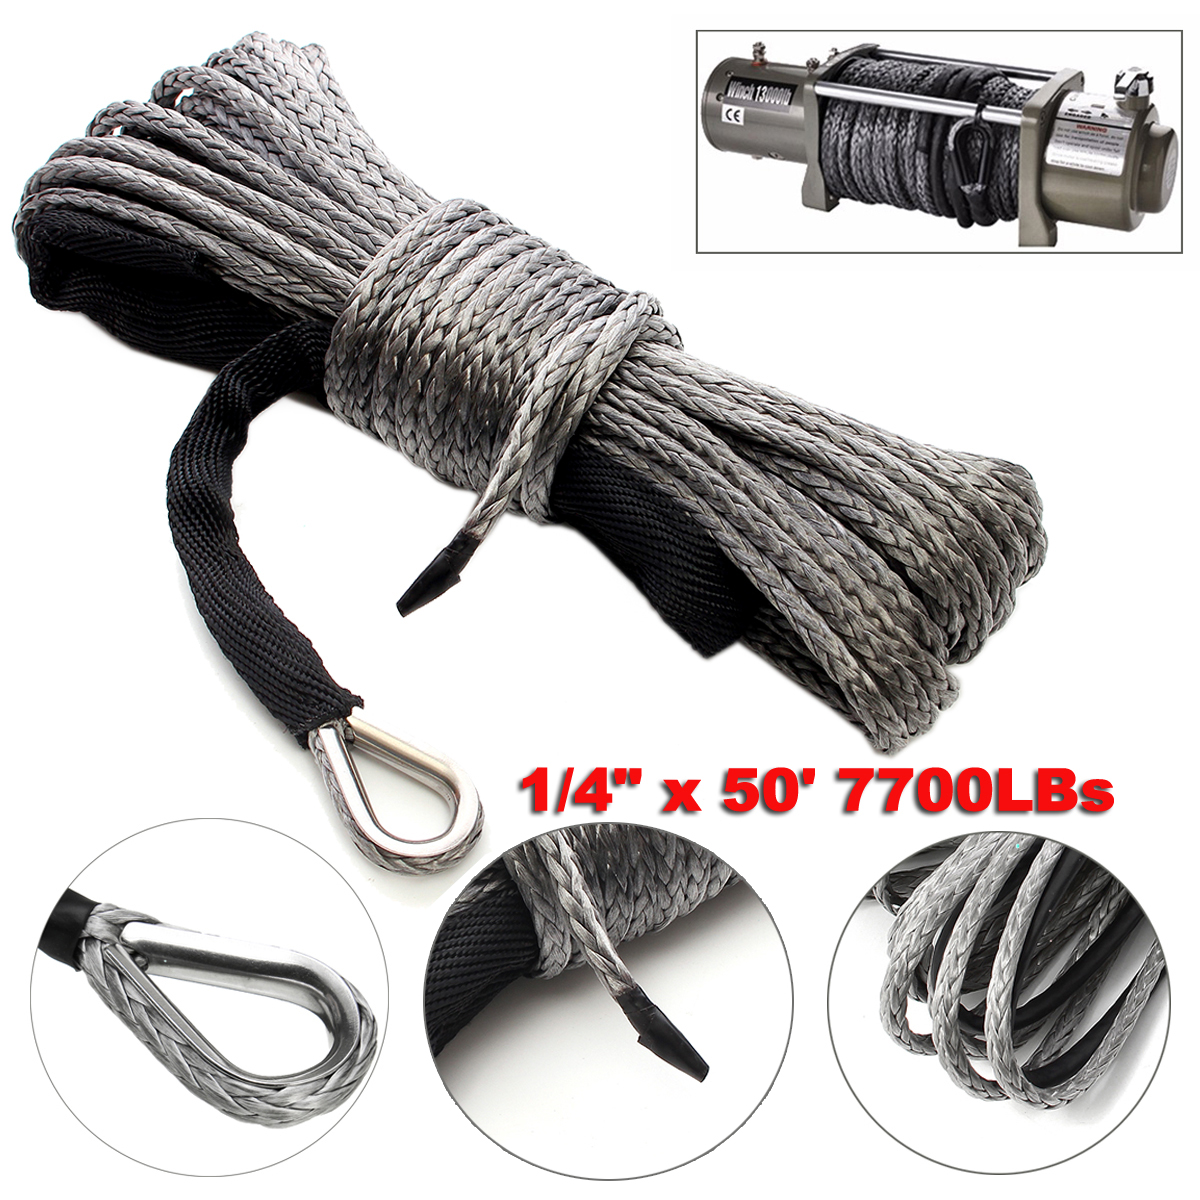 Winch Rope String Line Cable with Sheath Gray Synthetic Towing Rope 15m 7700LBs Car Wash Maintenance String for ATV UTV Off-Road(China)